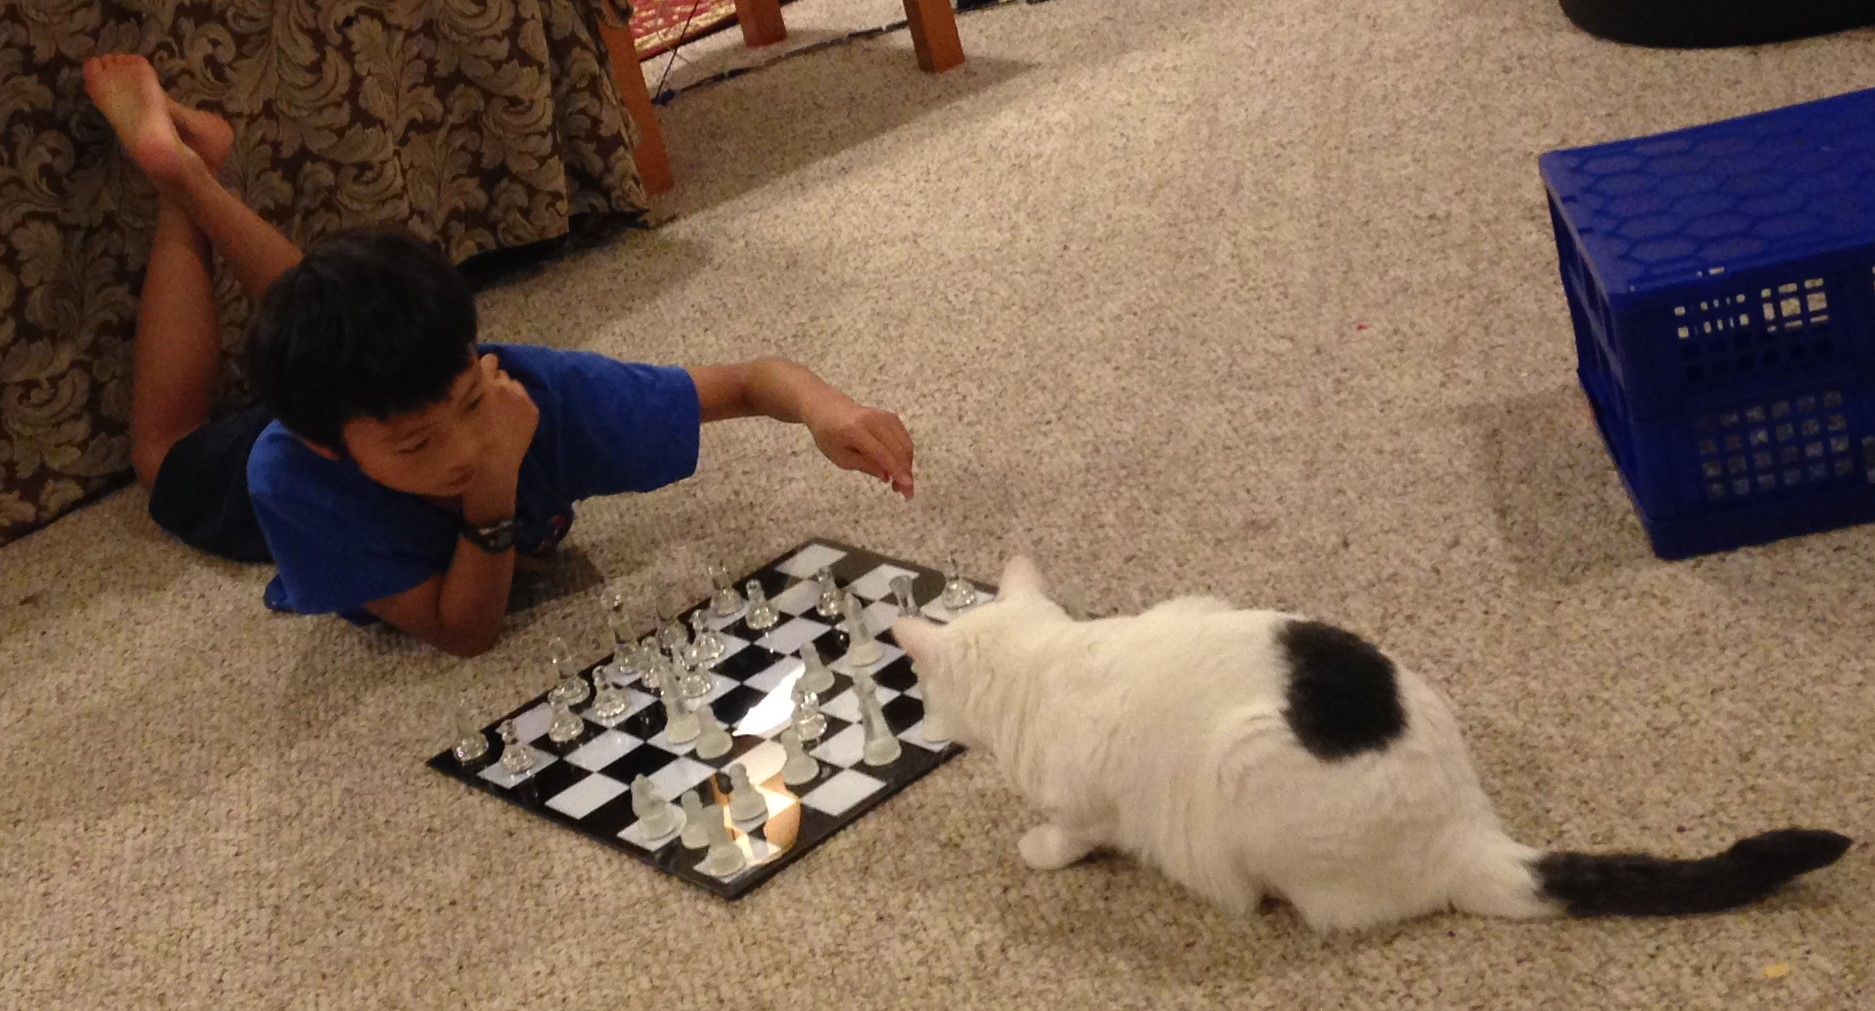 Intense Chess Game